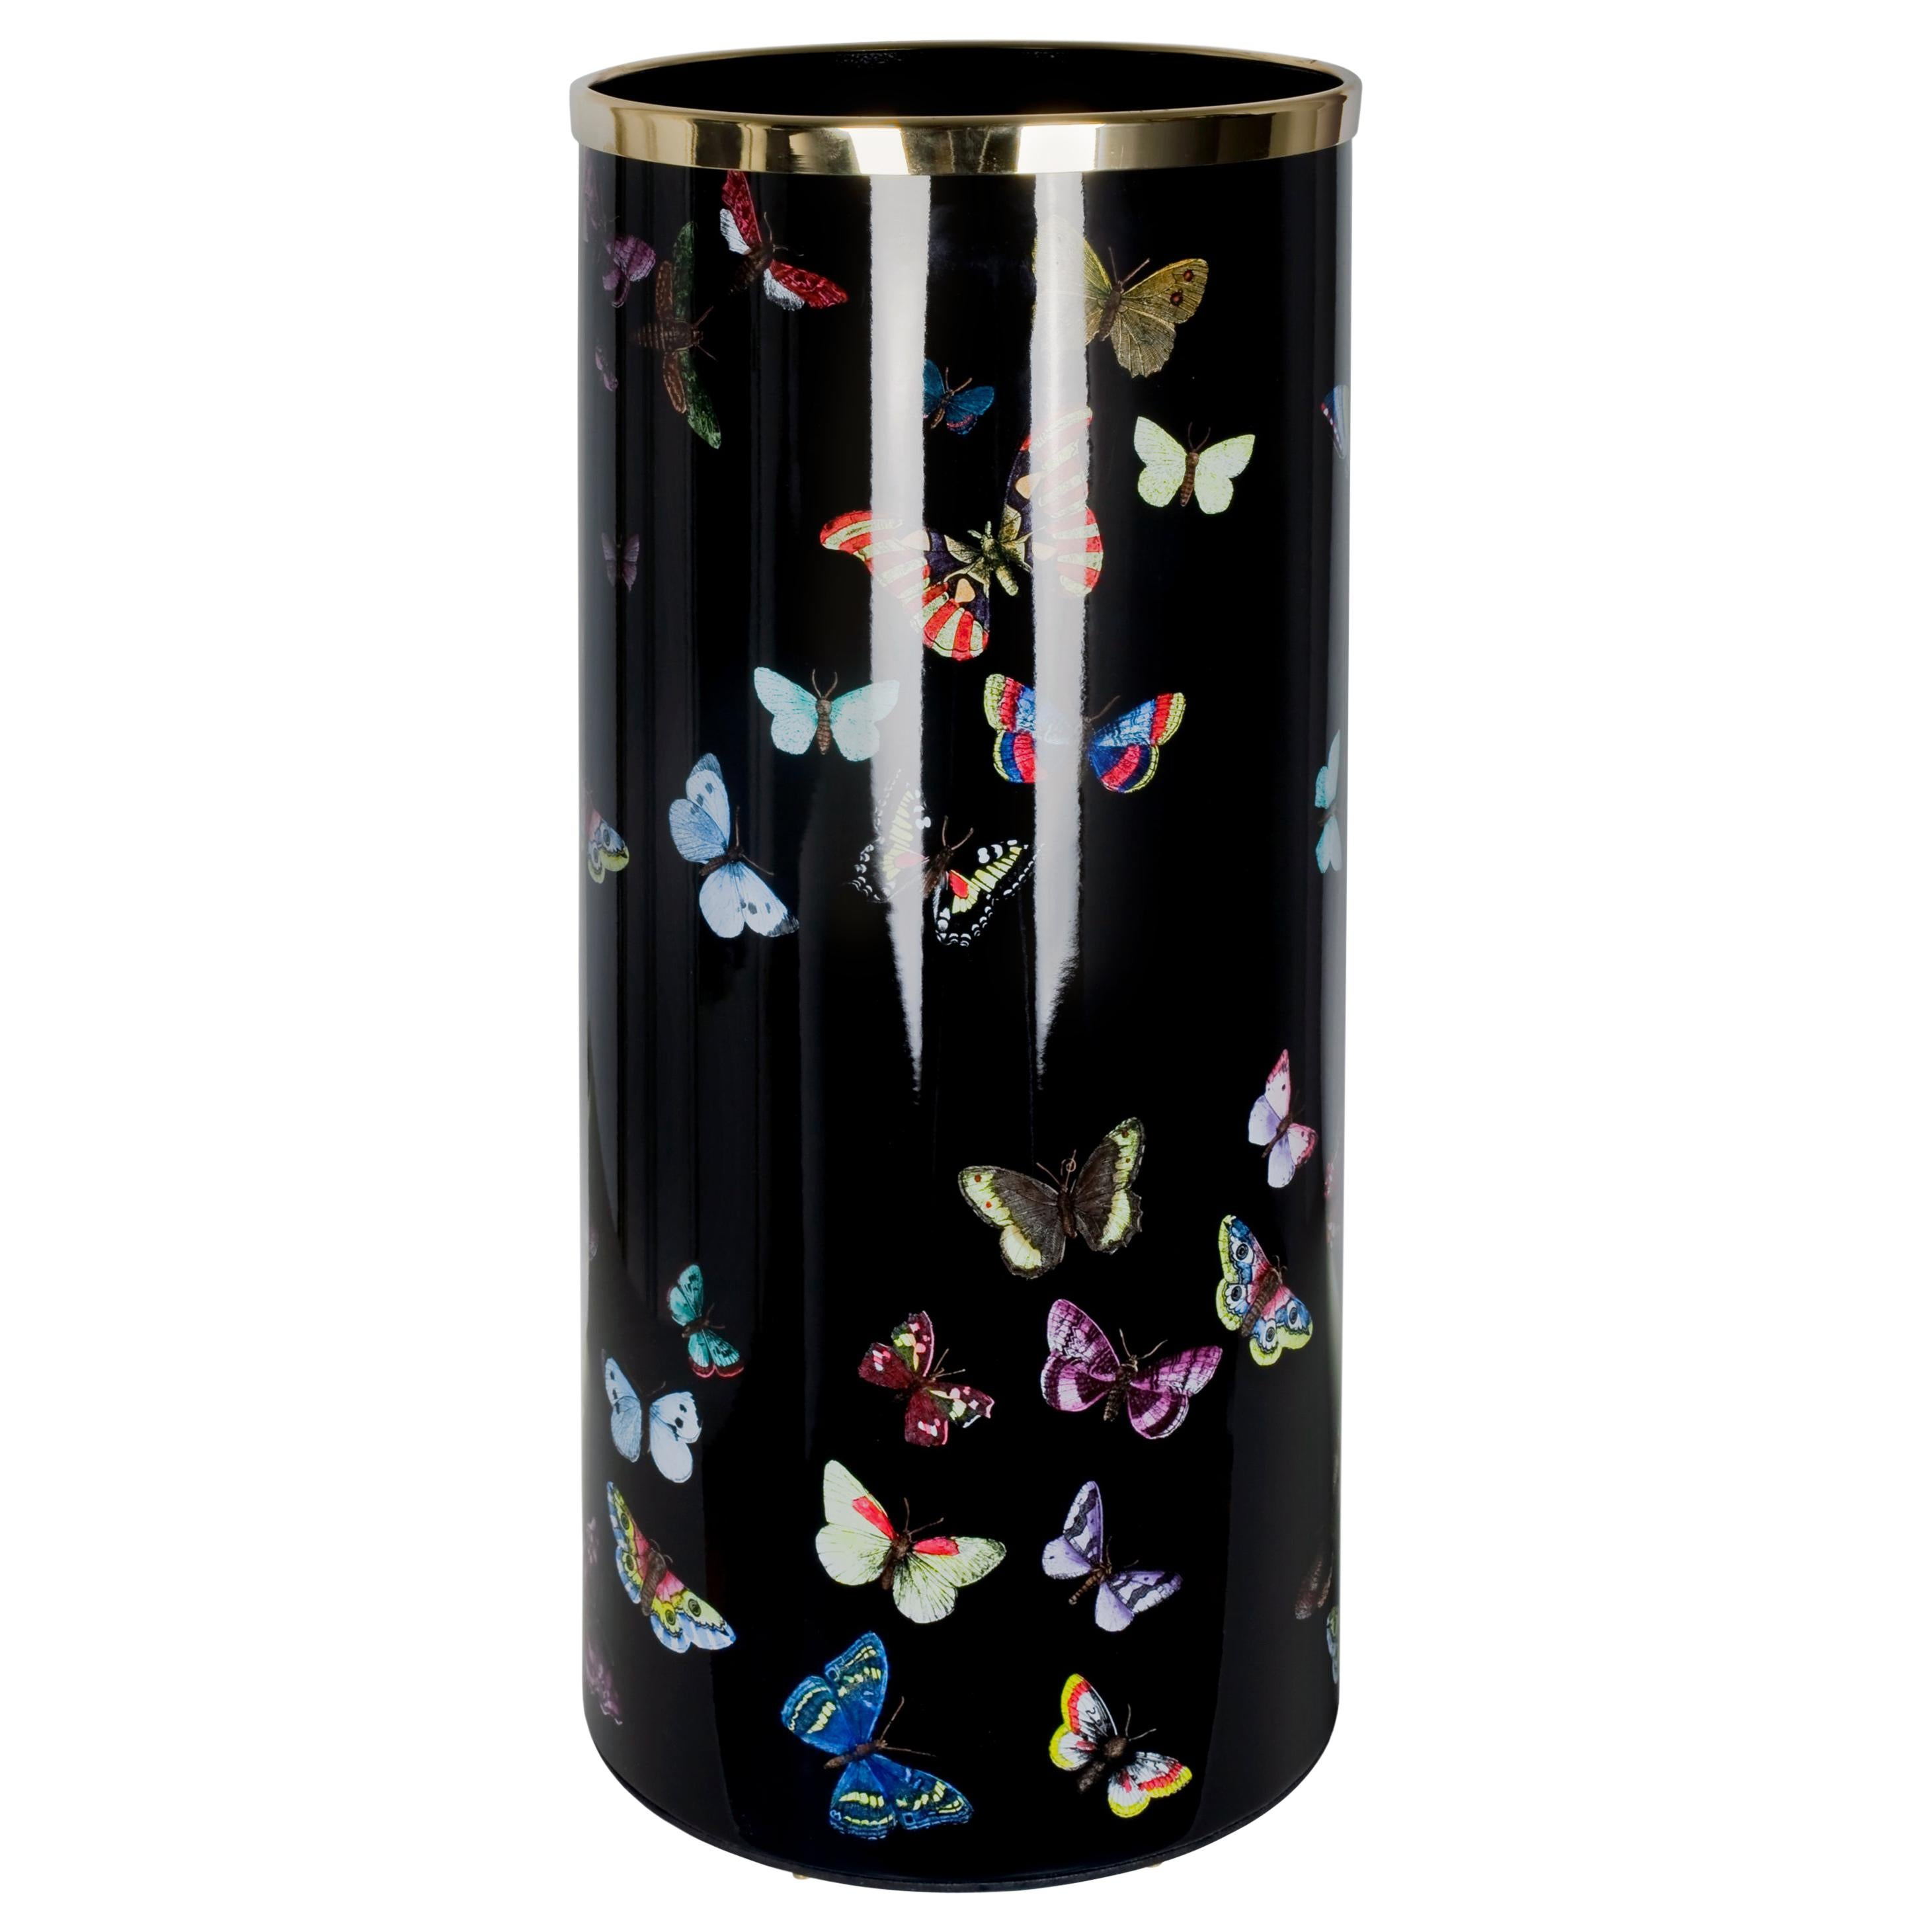 Fornasetti Umbrella Stand Farfalle Butterflies Hand Colored on Black